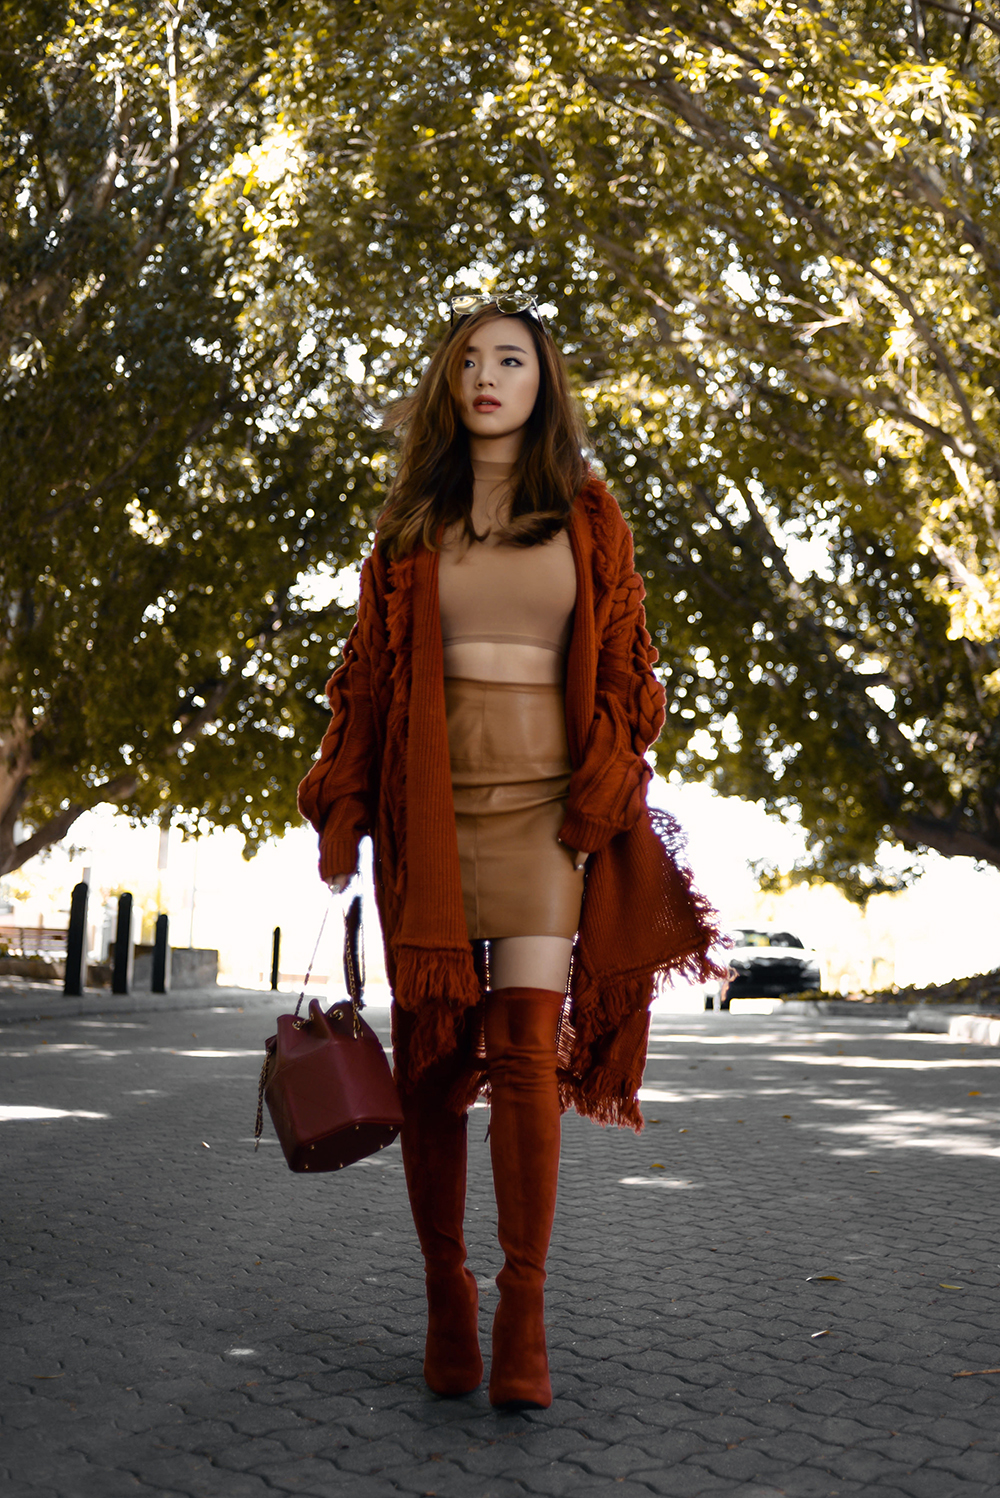 Rust Red Pale Division By Willabelle Ong Singapore 39 S Fashion Beauty And Travel Blogger